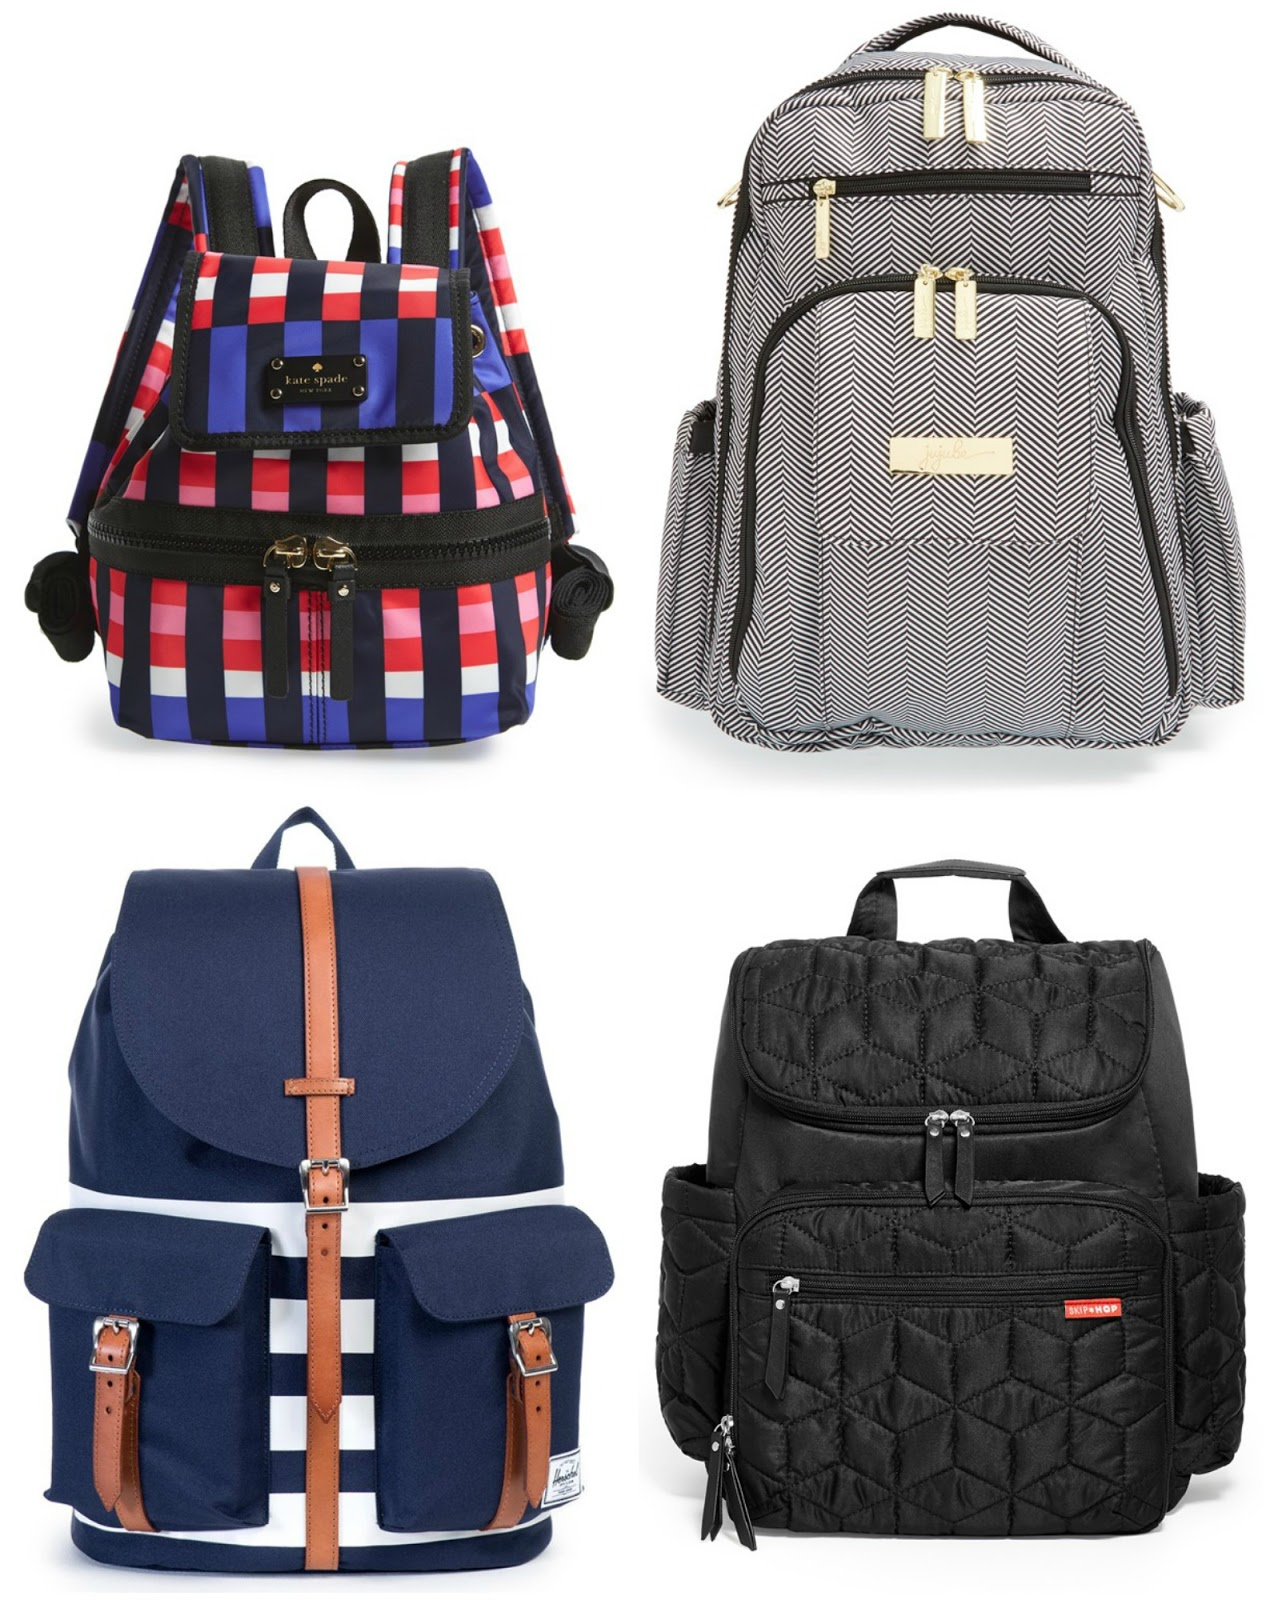 Backpacks Diaper Bags